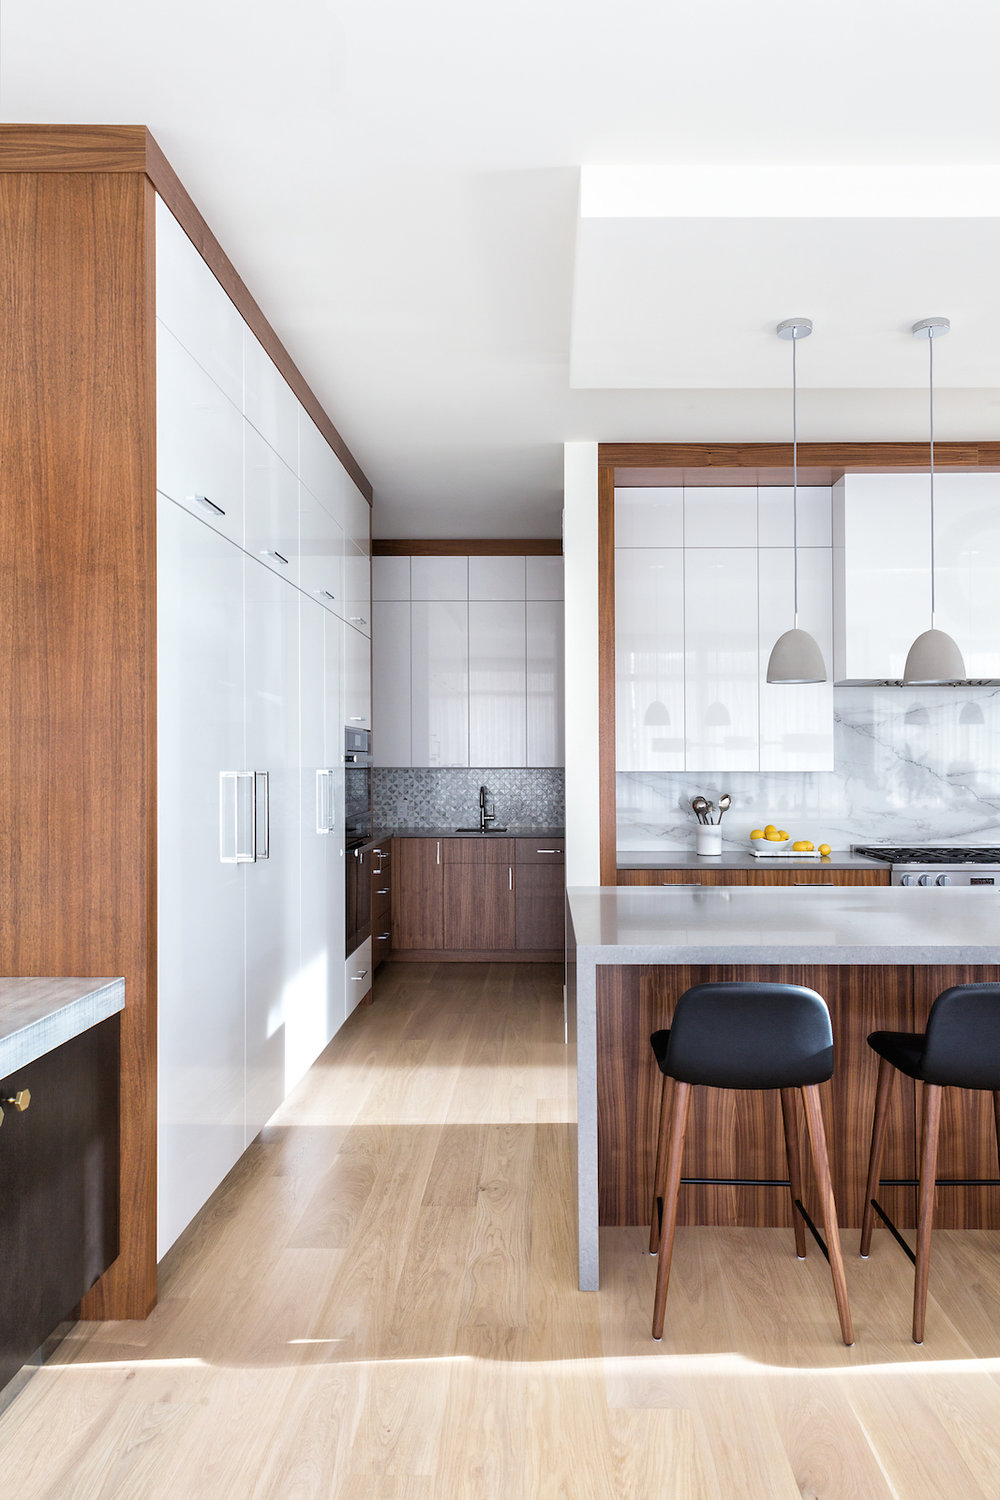 Modern Kitchen in a Bright, Airy, Open Concept Home, Calgary Interior Designer, Nyla Free Designs, DeJong Design Associates, Insignia Custom Homes, Phil Crozier Photography